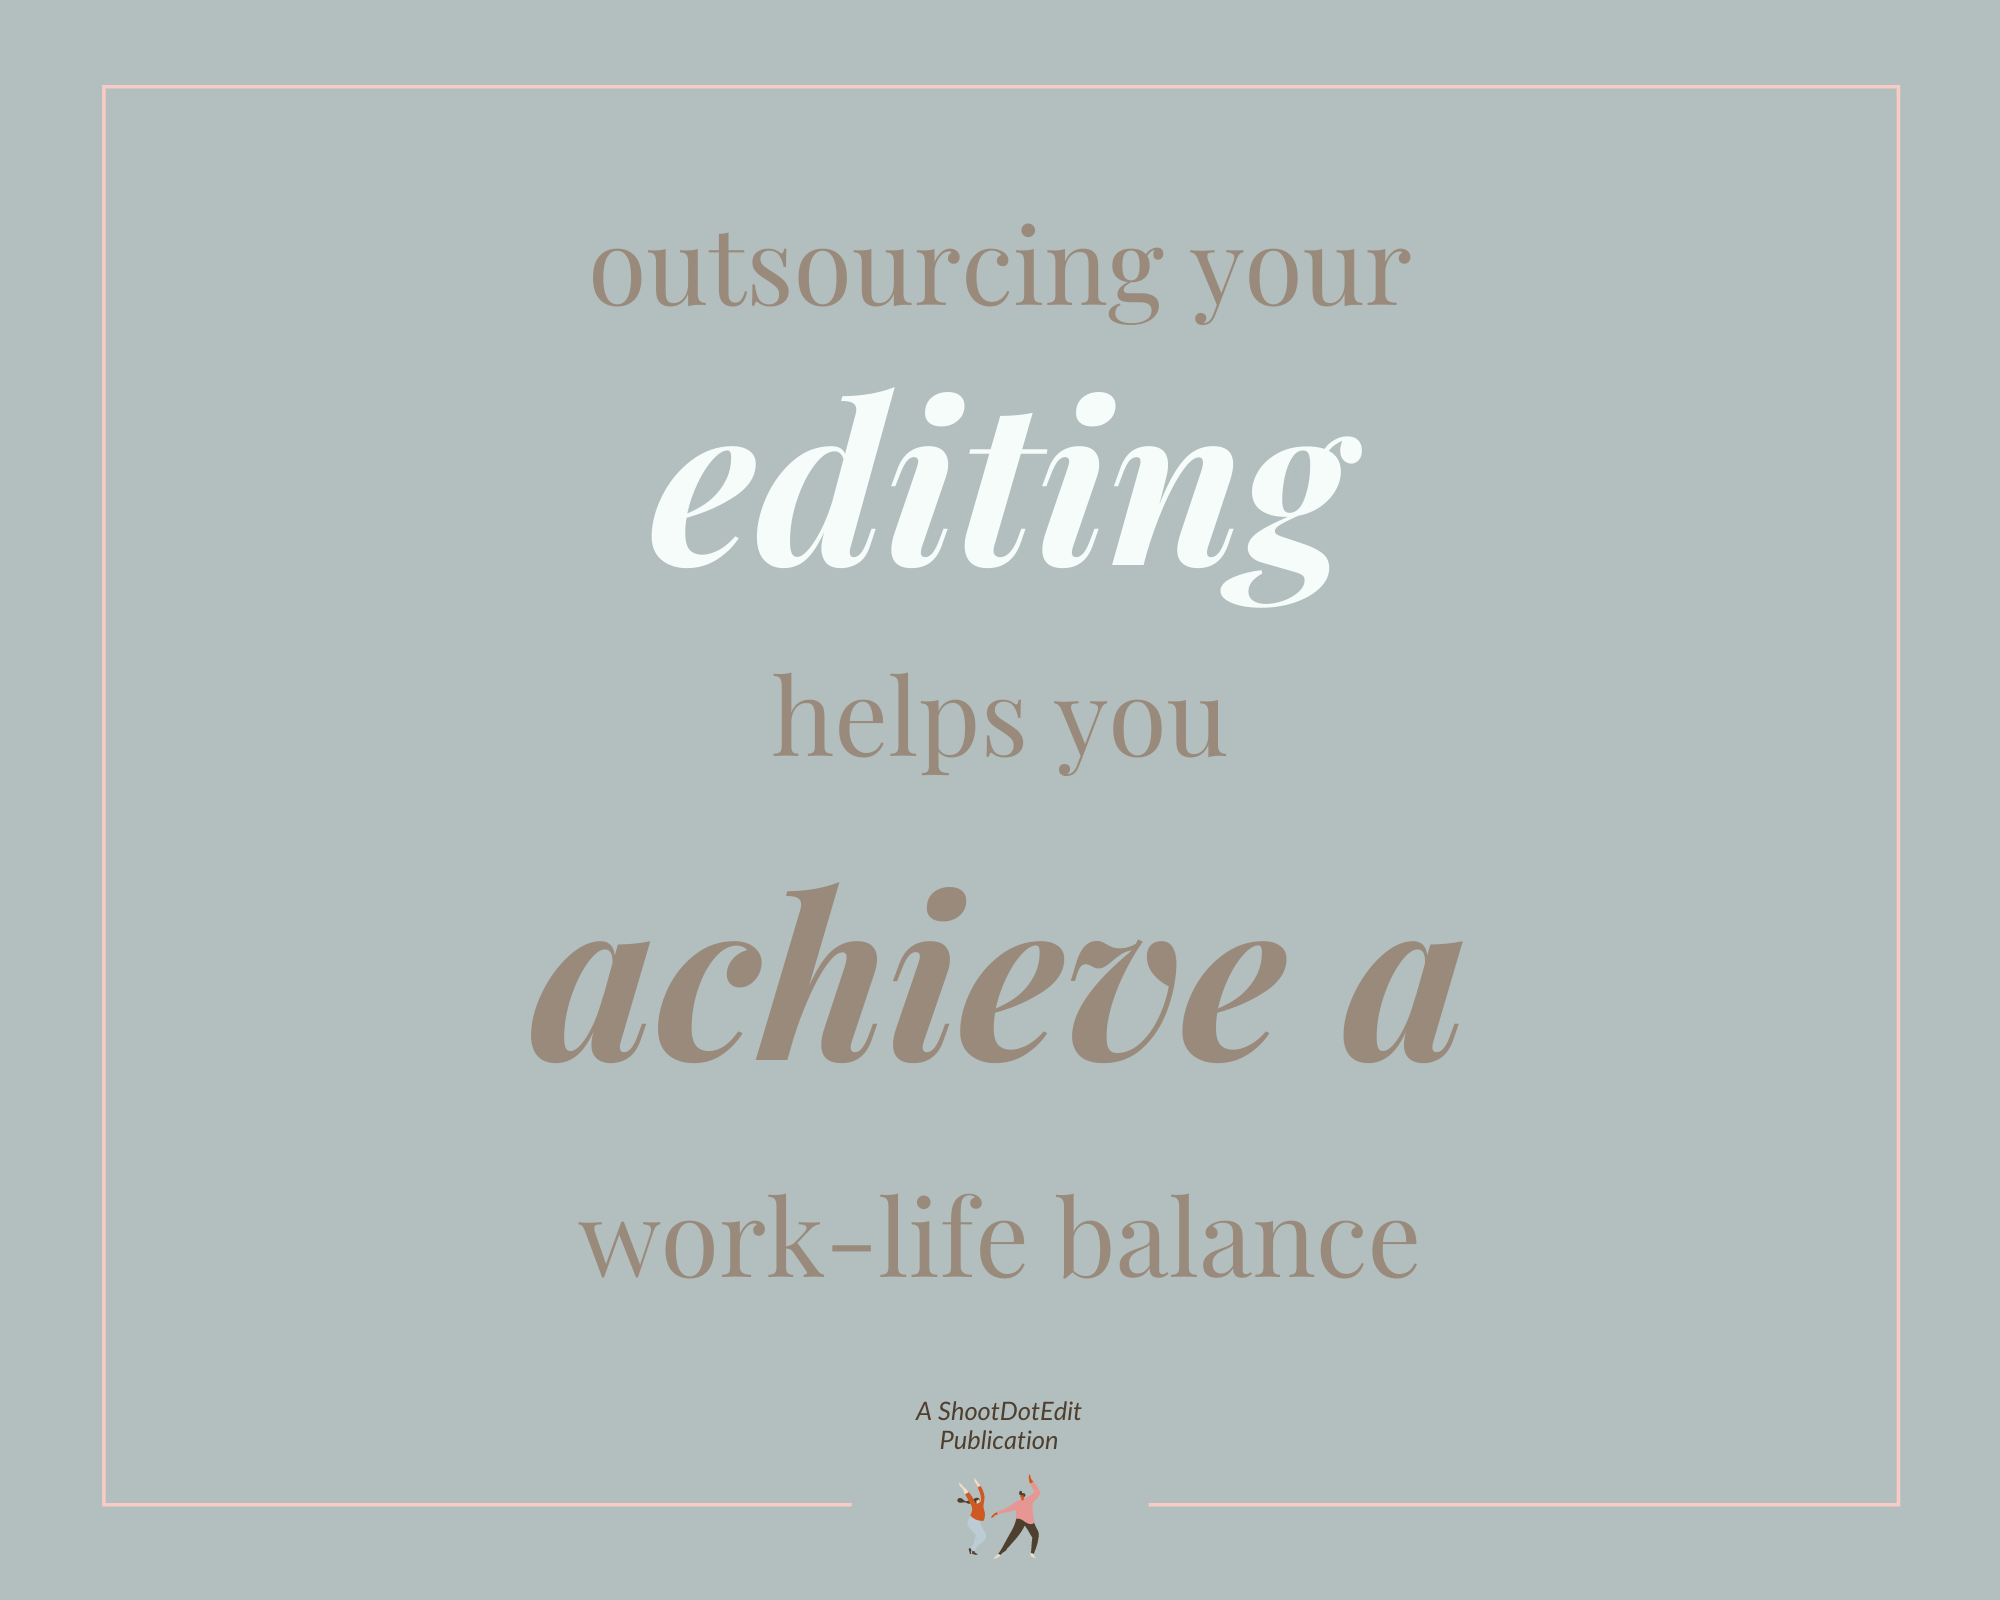 Infographic stating outsourcing your editing helps you achieve a work life balance